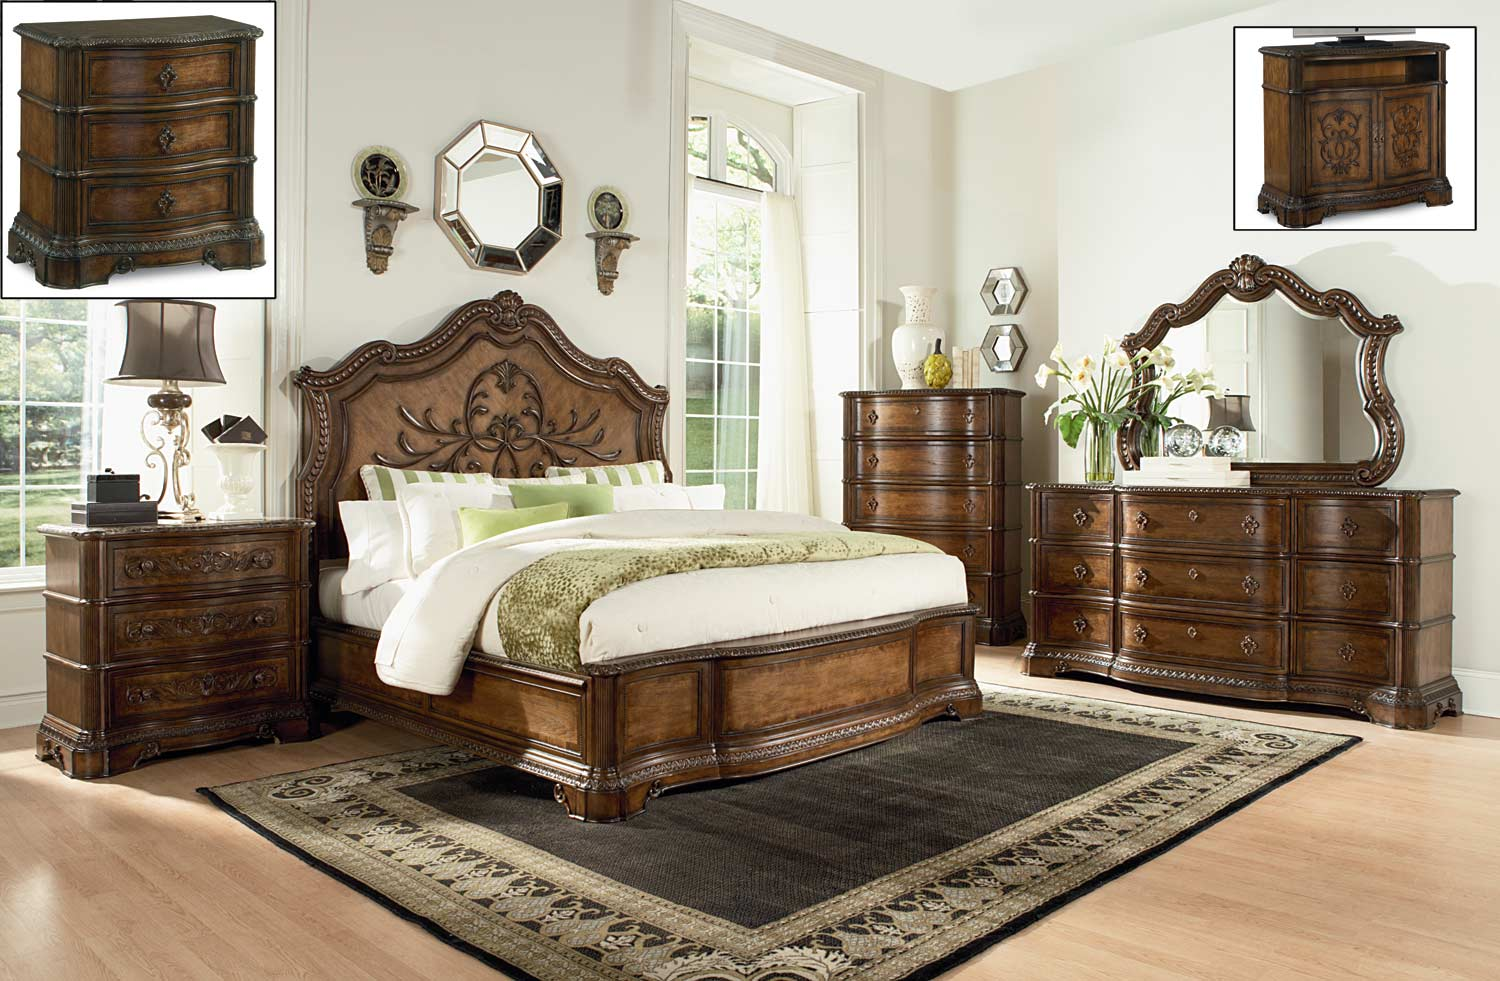 Legacy Classic Pemberleigh Panel Bedroom Set - Brandy/Burnished Edges